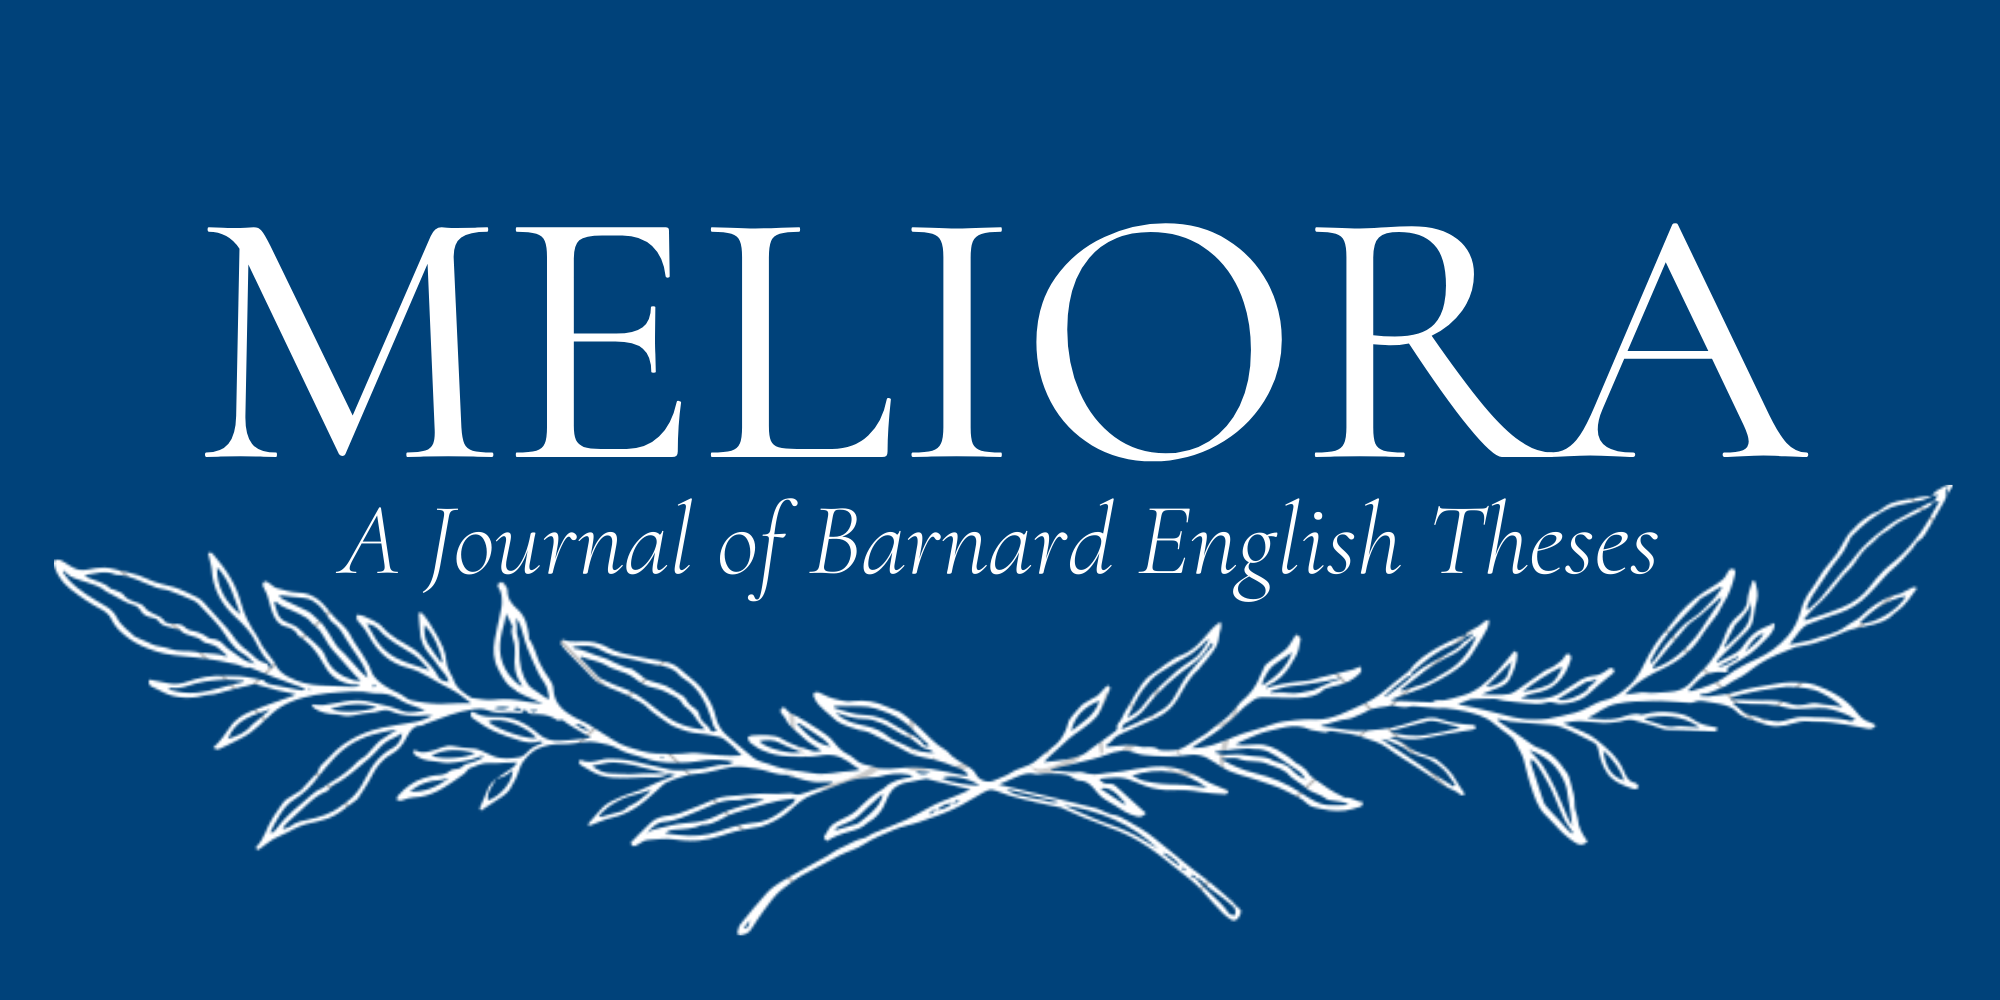 Meliora: A Journal of Barnard English Theses